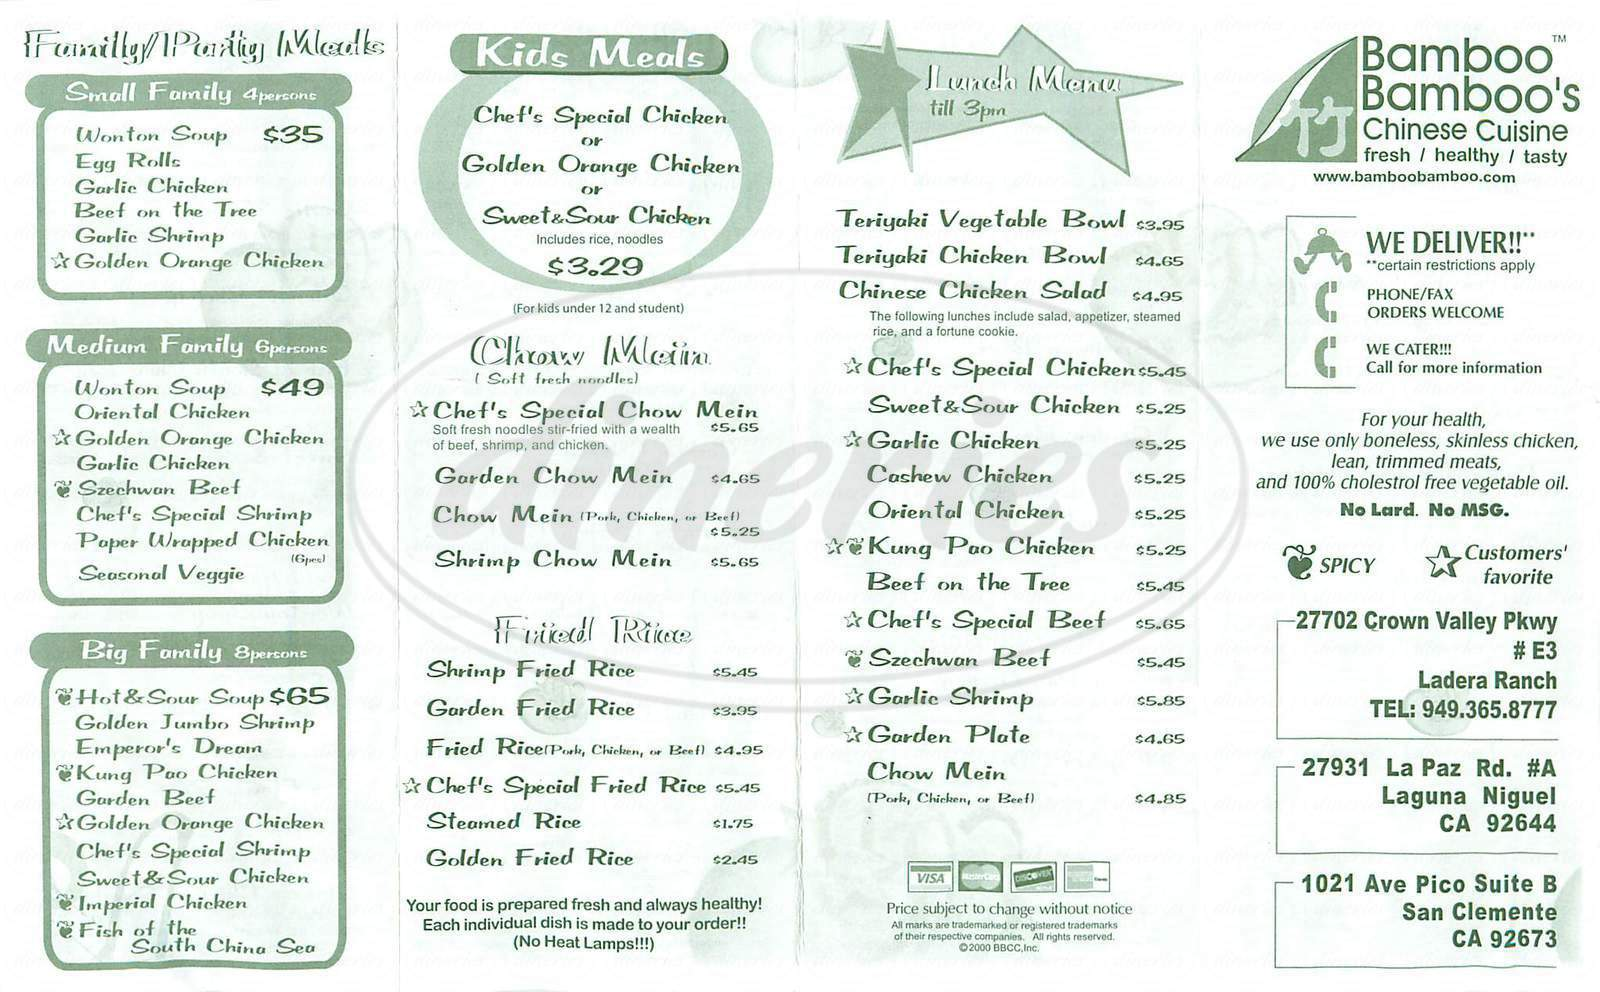 menu for Bamboo Bamboo's